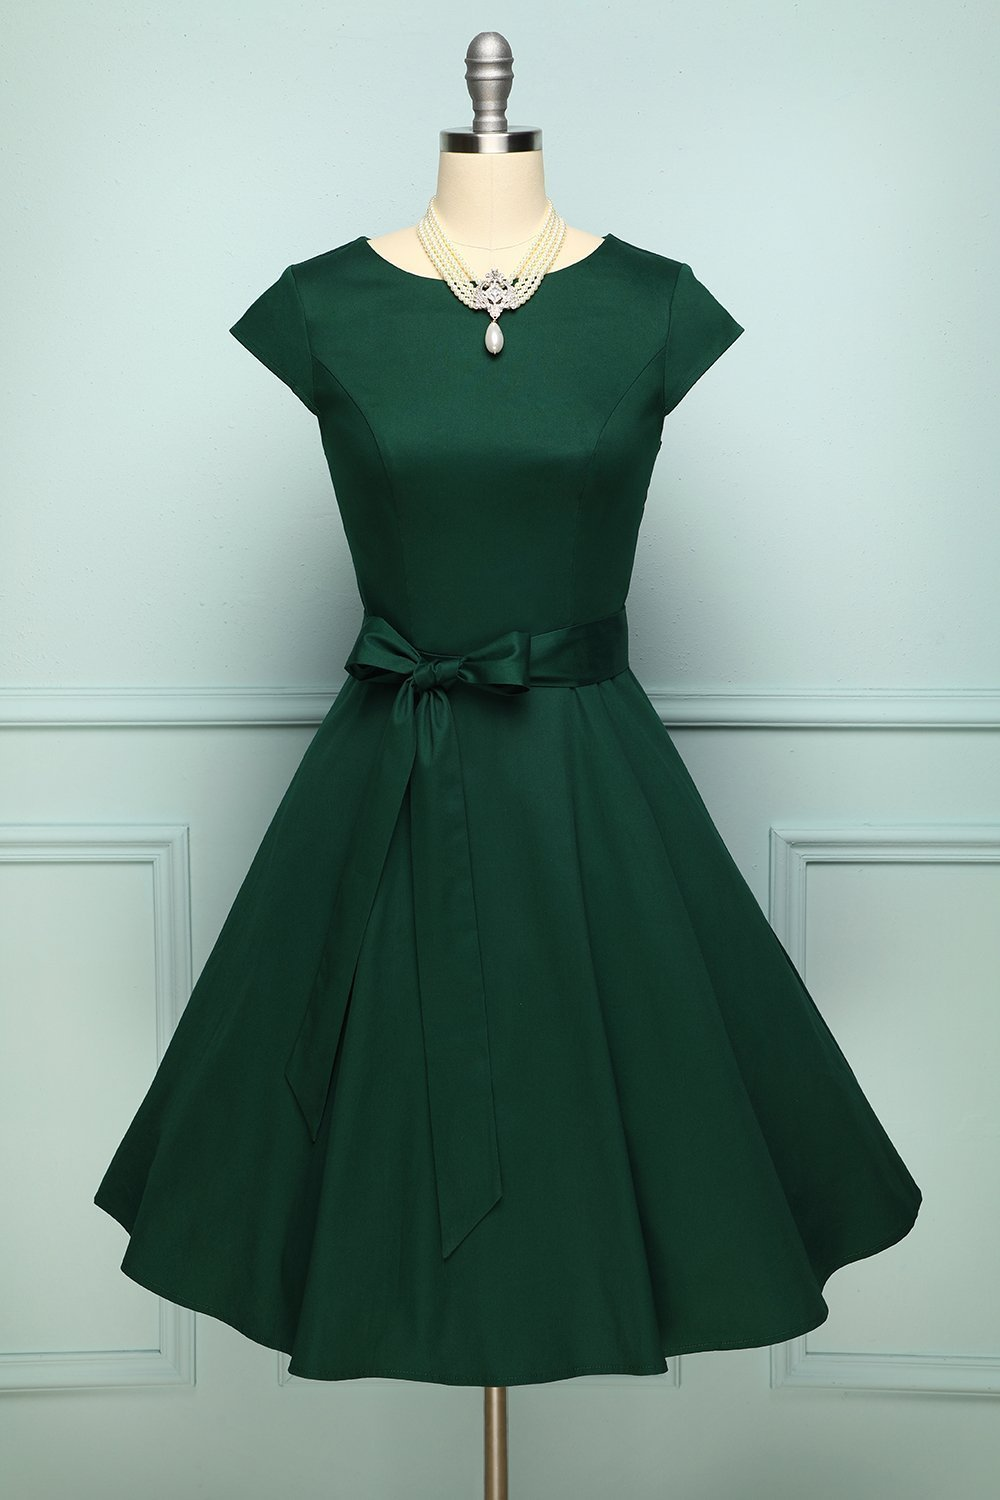 Green A Line Vintage 1950s Cap Sleeves Swing Pinup Party Dress